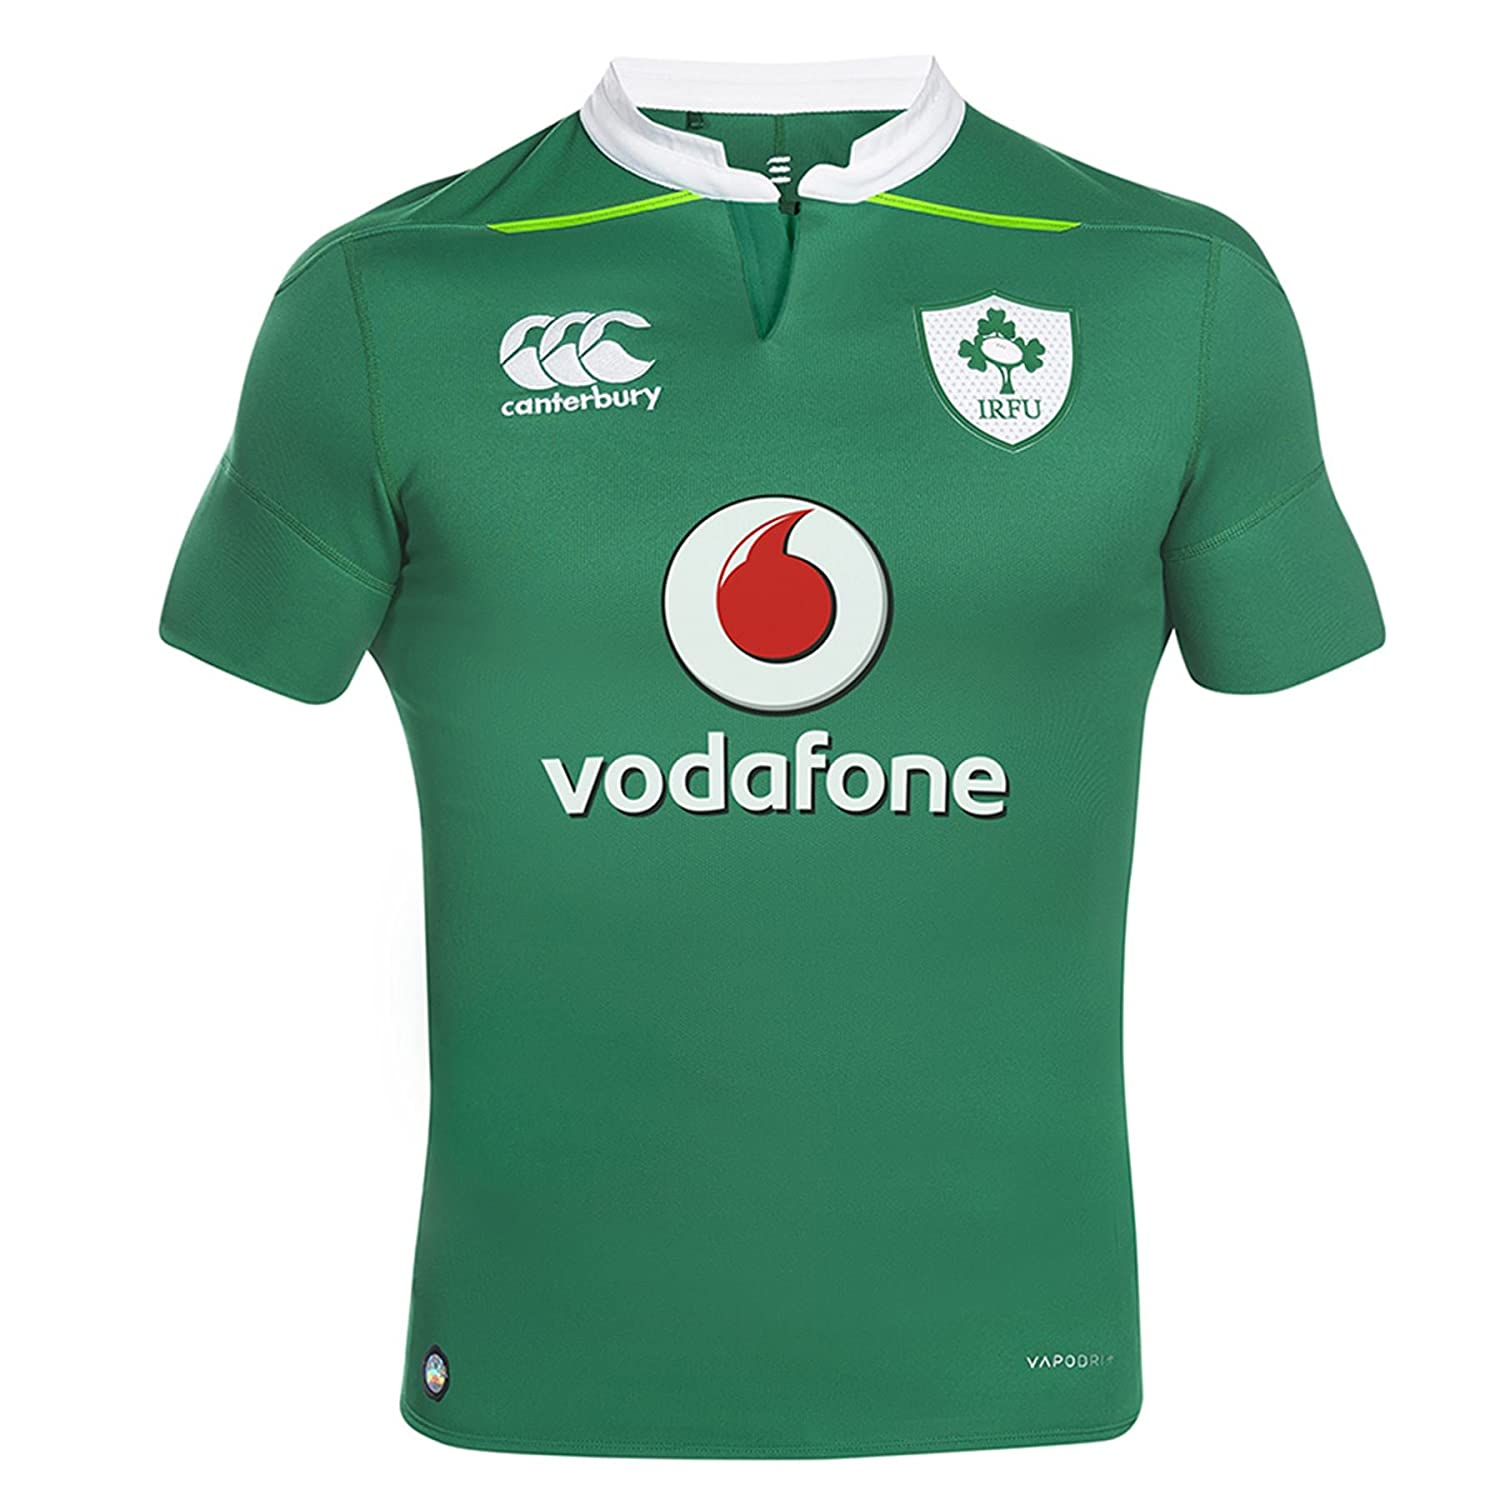 Canterbury Ireland Rugby Vapordri+ Home Test Jersey